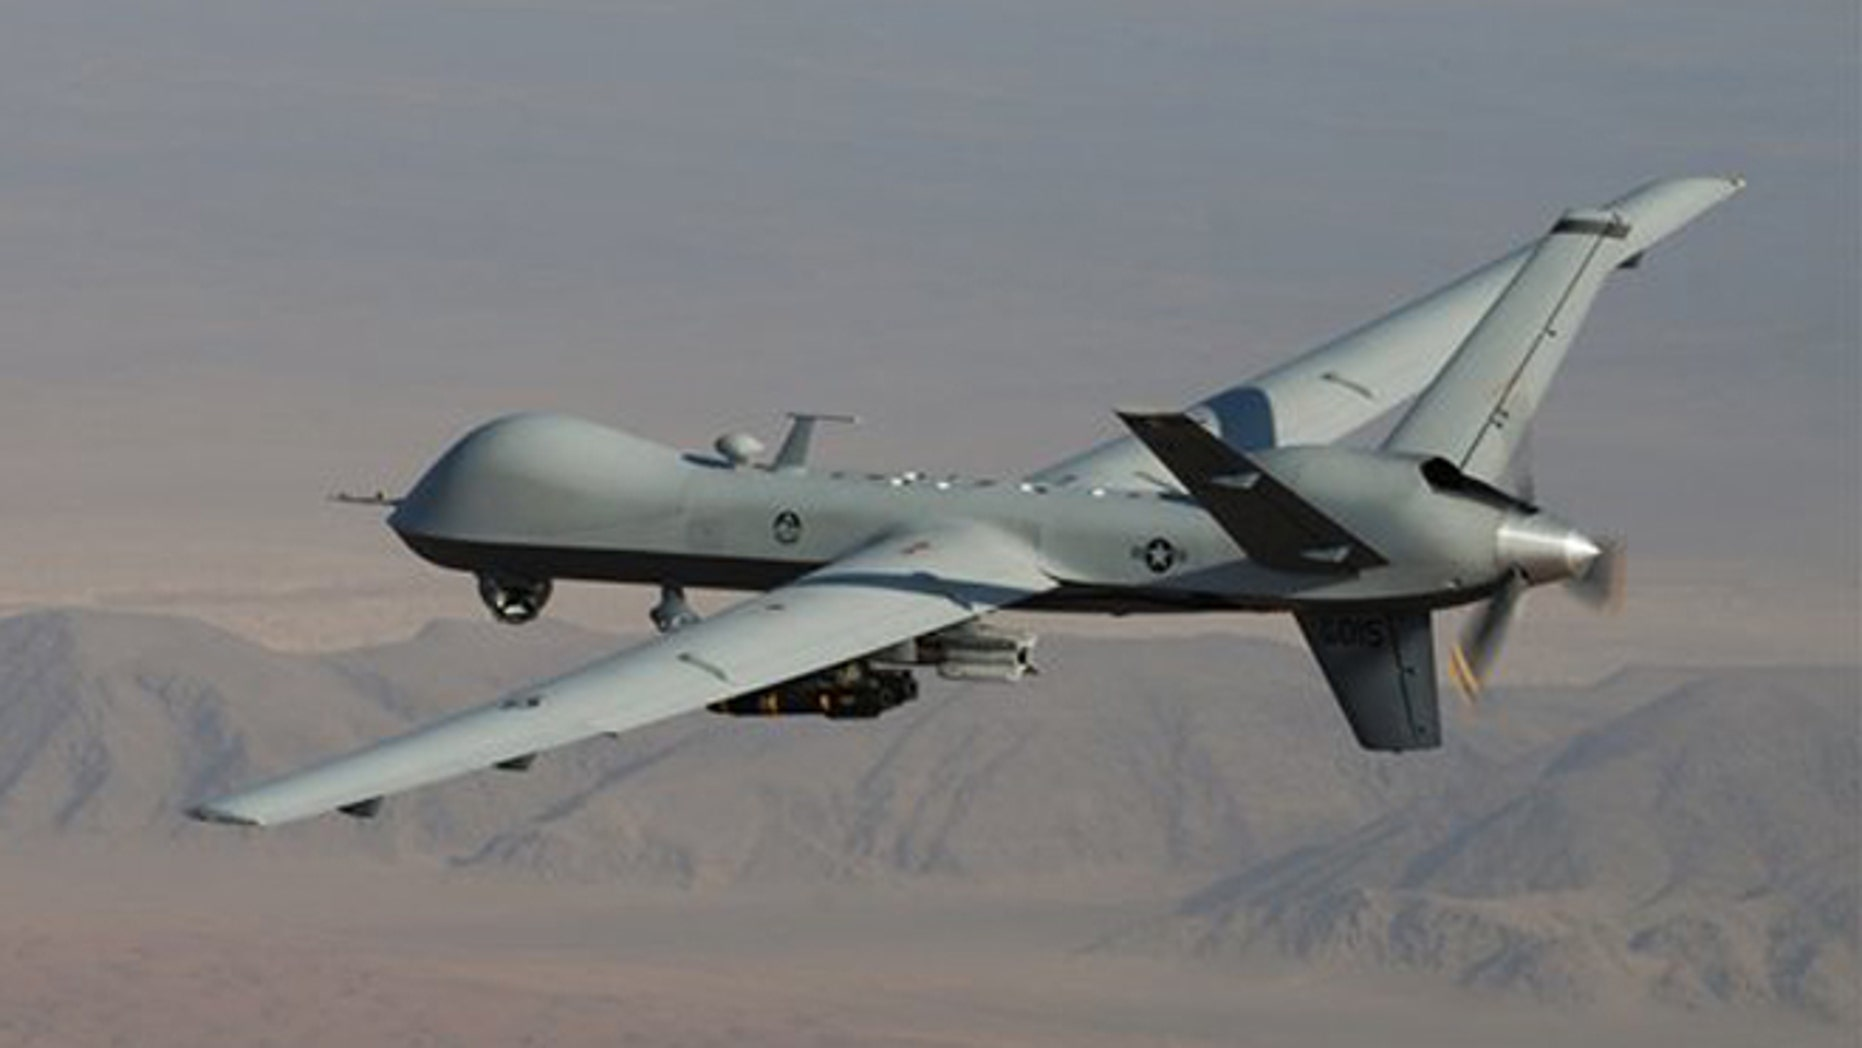 A MQ-9 Reaper, armed with GBU-12 Paveway II laser guided munitions and AGM-114 Hellfire missiles, is piloted by Col. Lex Turner during a combat mission over southern Afghanistan.